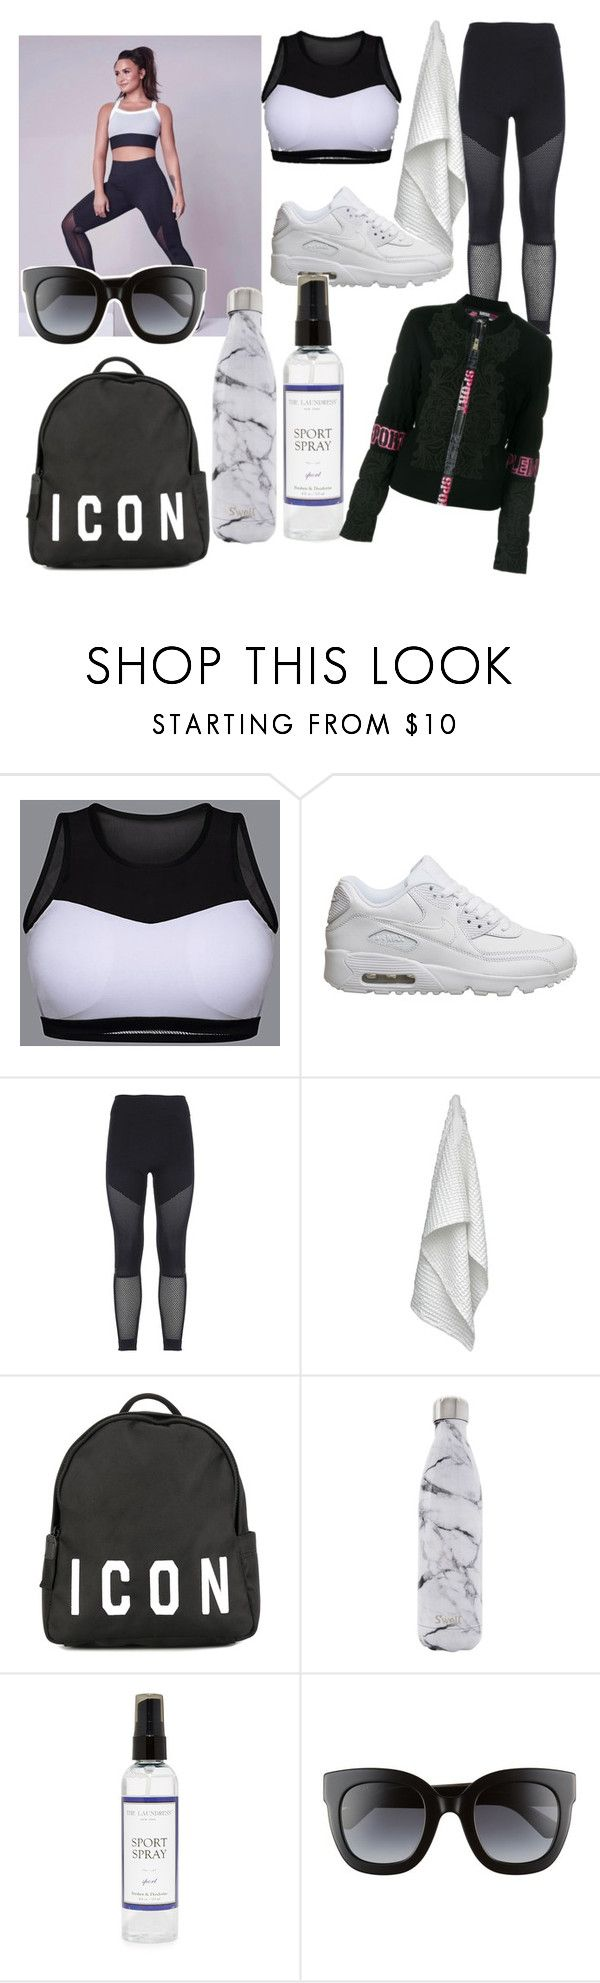 """sport"" by aliaalsadoon ❤ liked on Polyvore featuring NIKE, adidas, The Organic Company, Dsquared2, S'well, The Laundress, Gucci and Plein Sport"